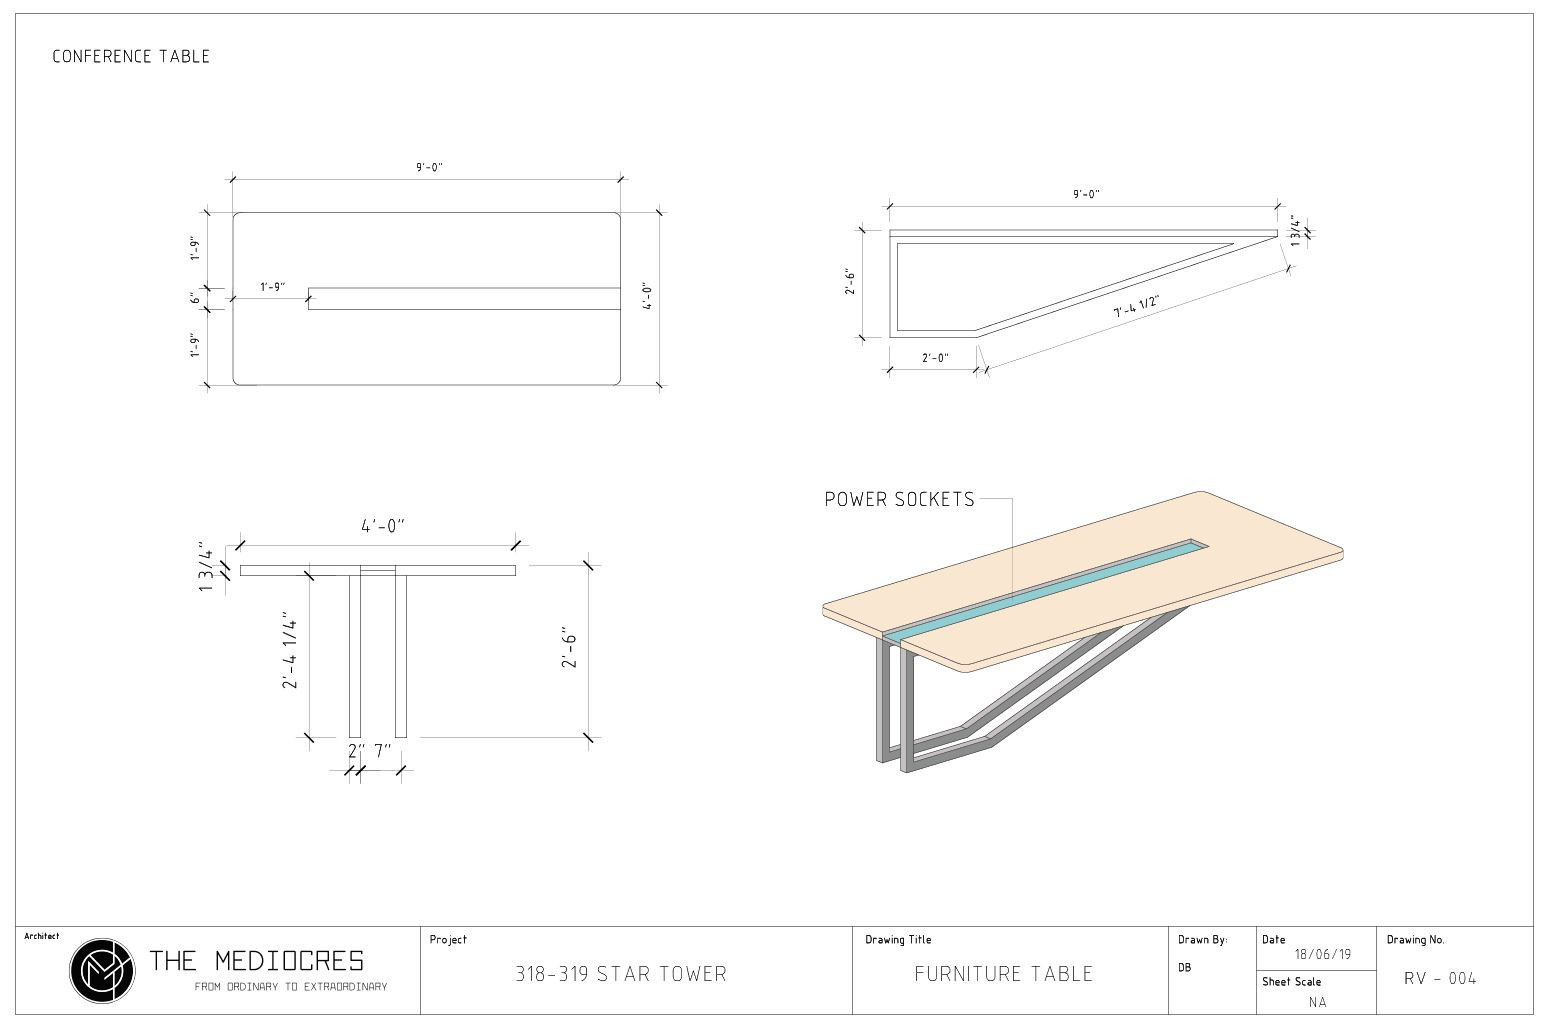 CONFERENCE TABLE DWG